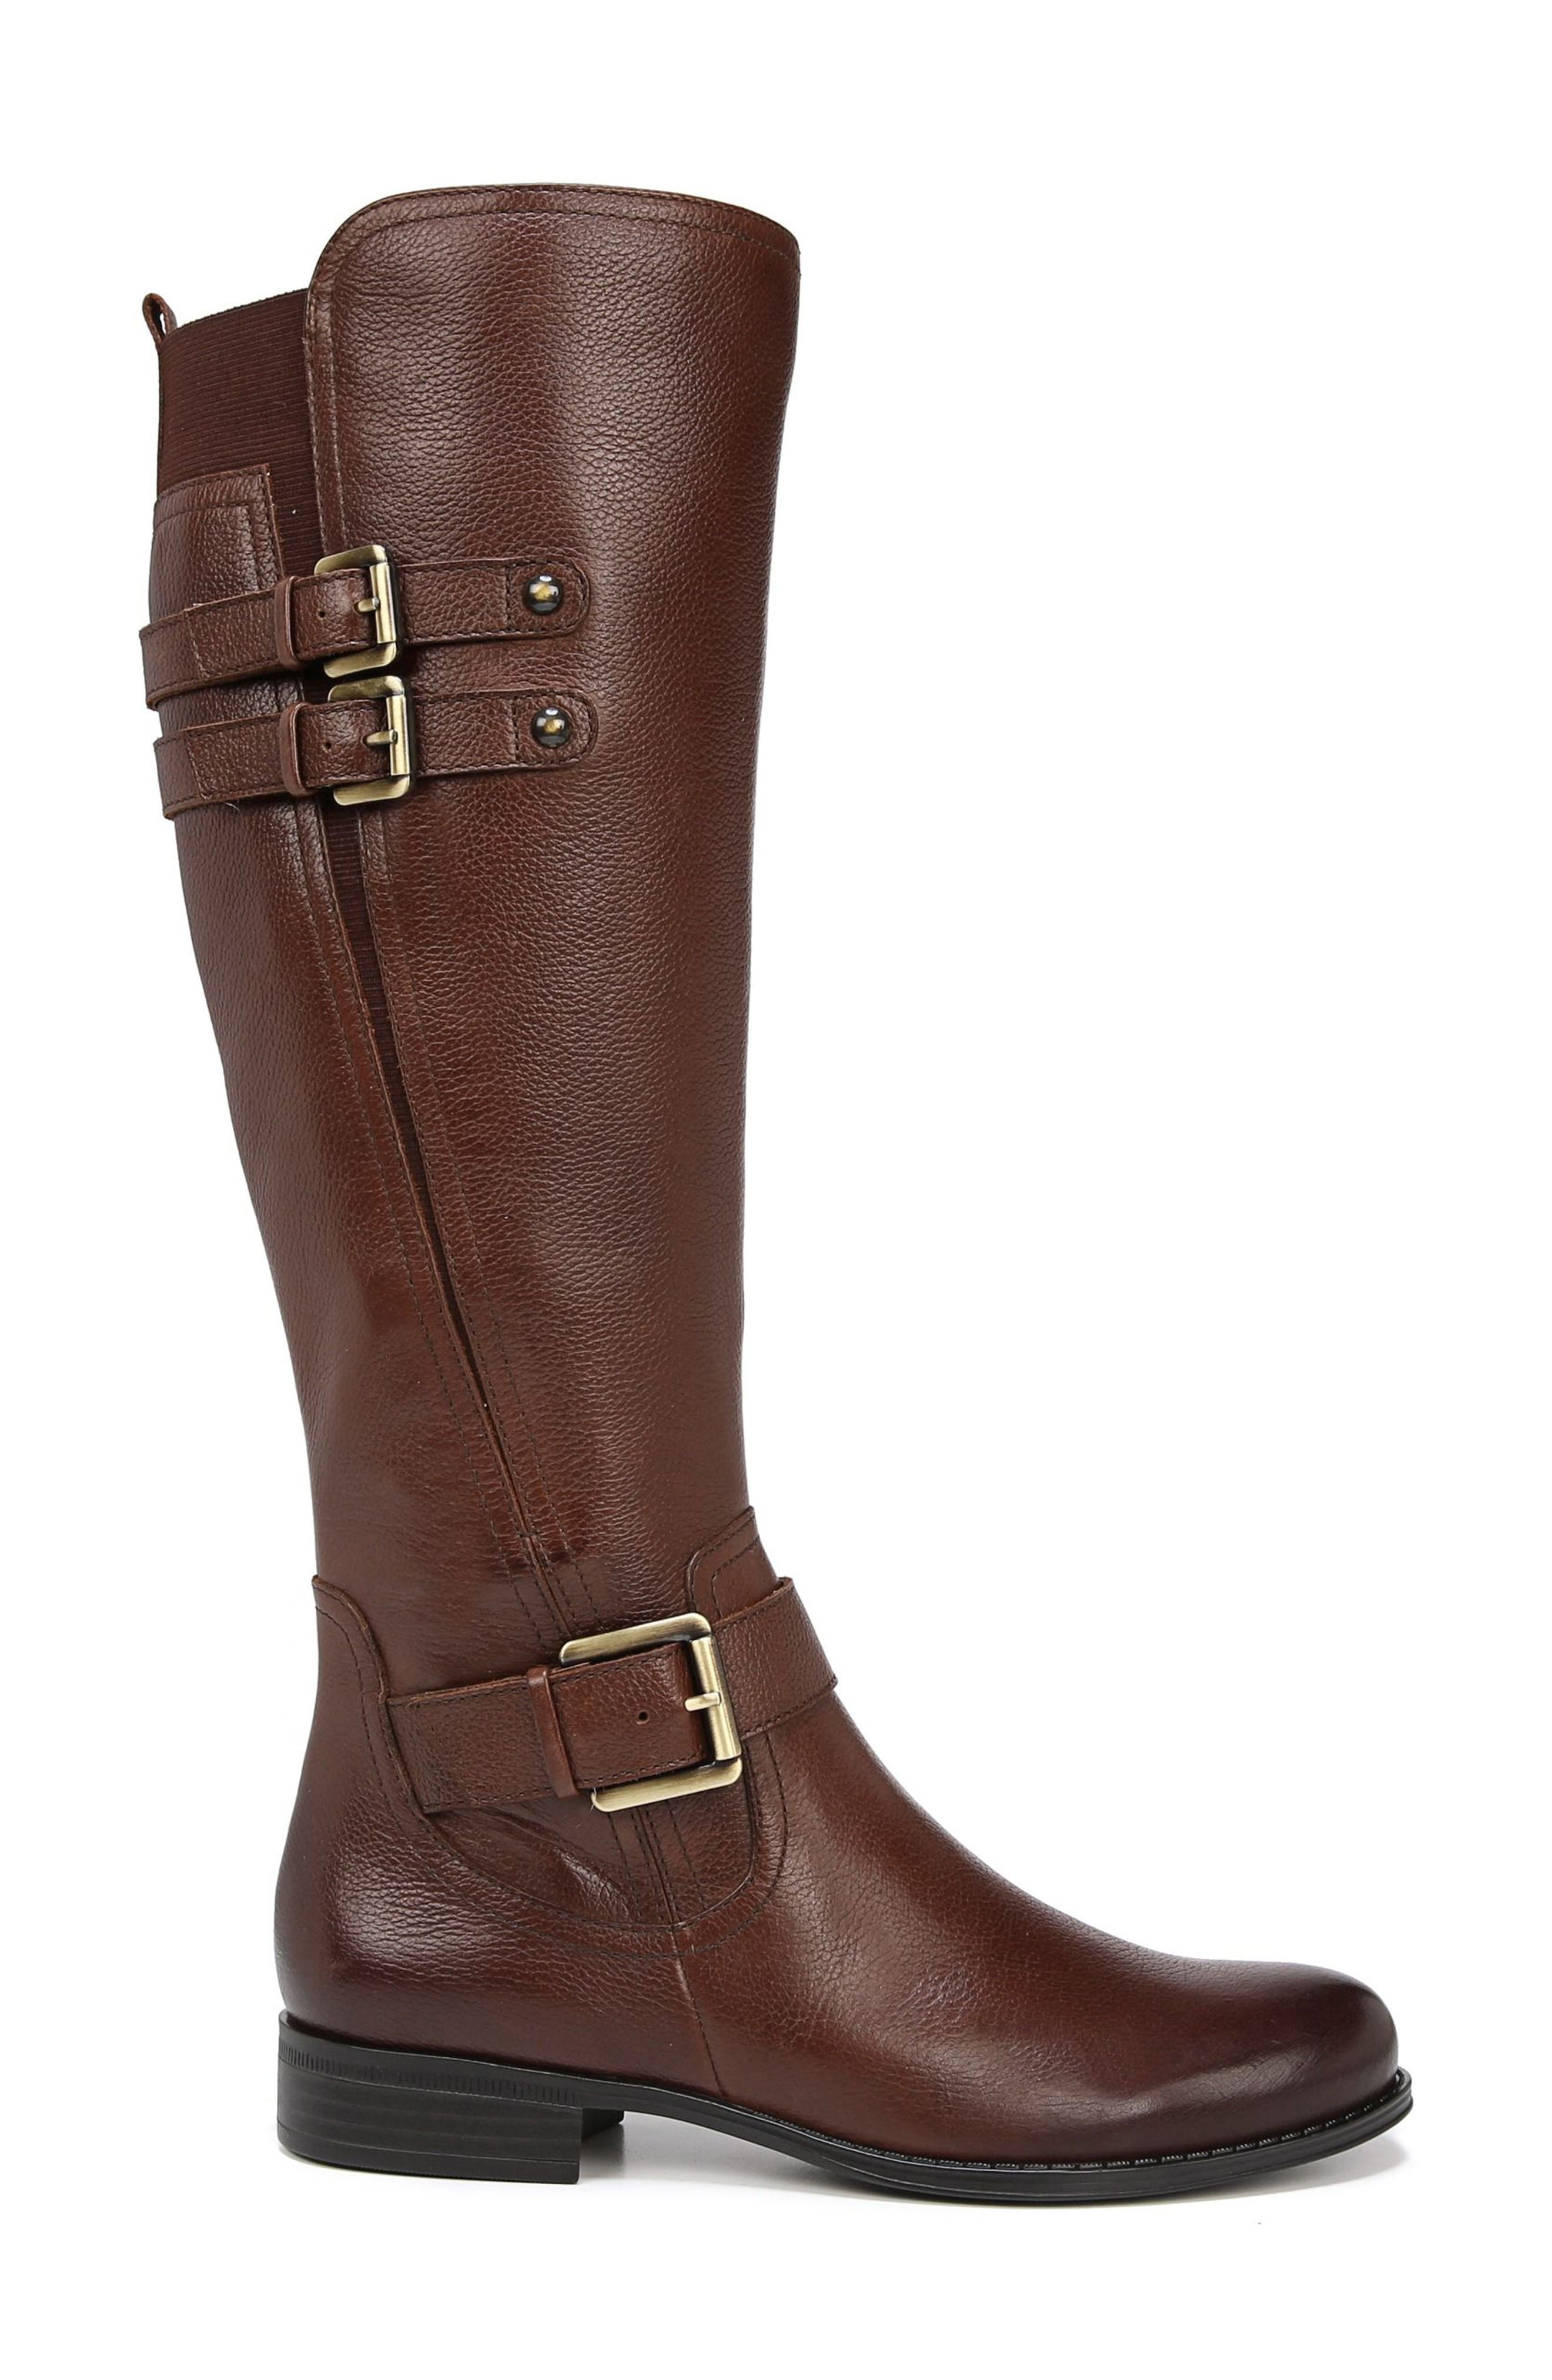 NATURALIZER, Jessie Knee High Riding Boot, Alternate thumbnail 3, color, CHOCOLATE LEATHER